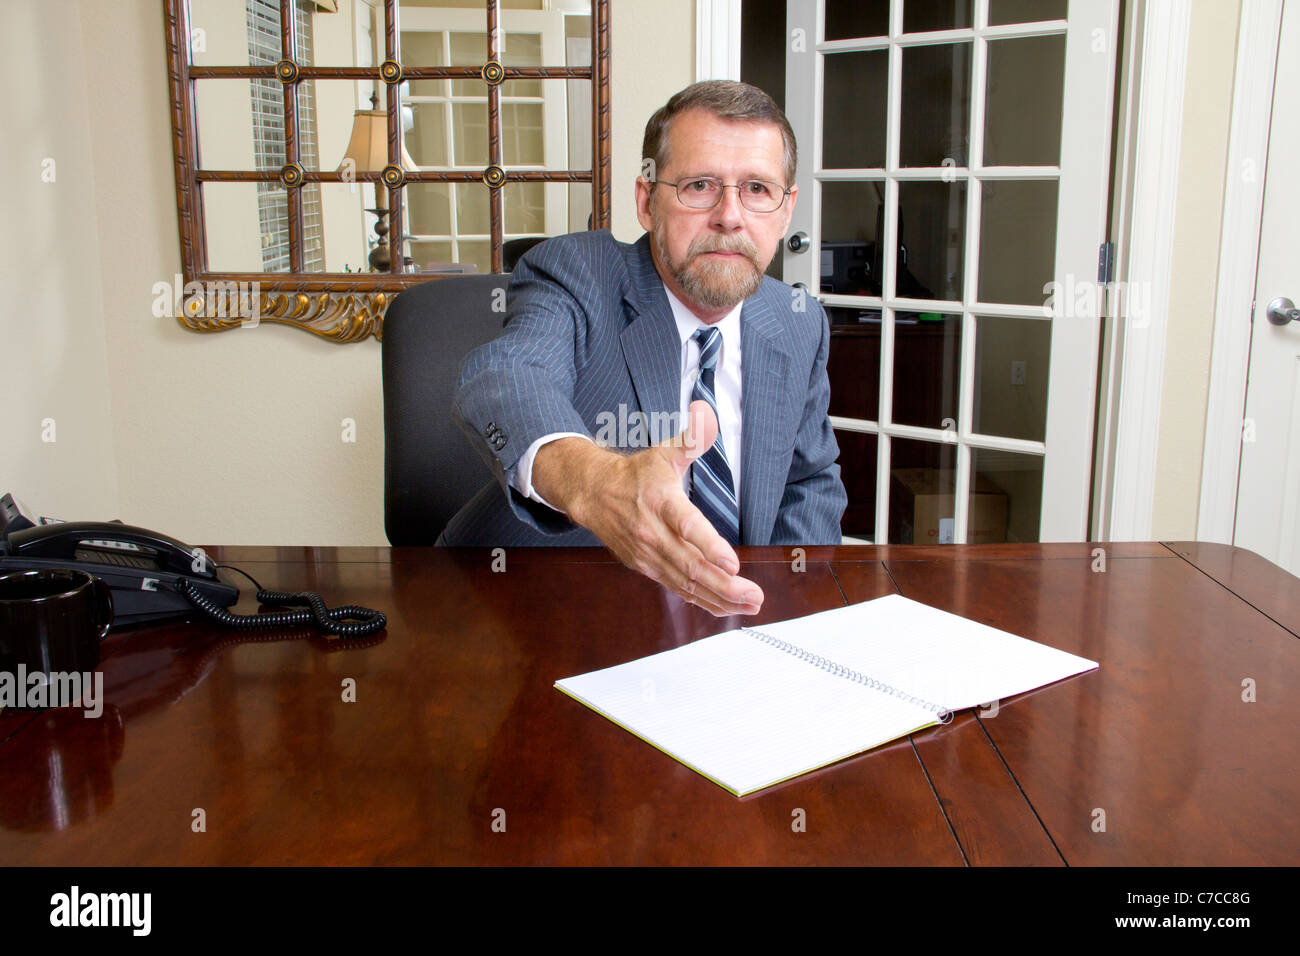 Loan Officer Stock Photo, Royalty Free Image: 38996400 - Alamy